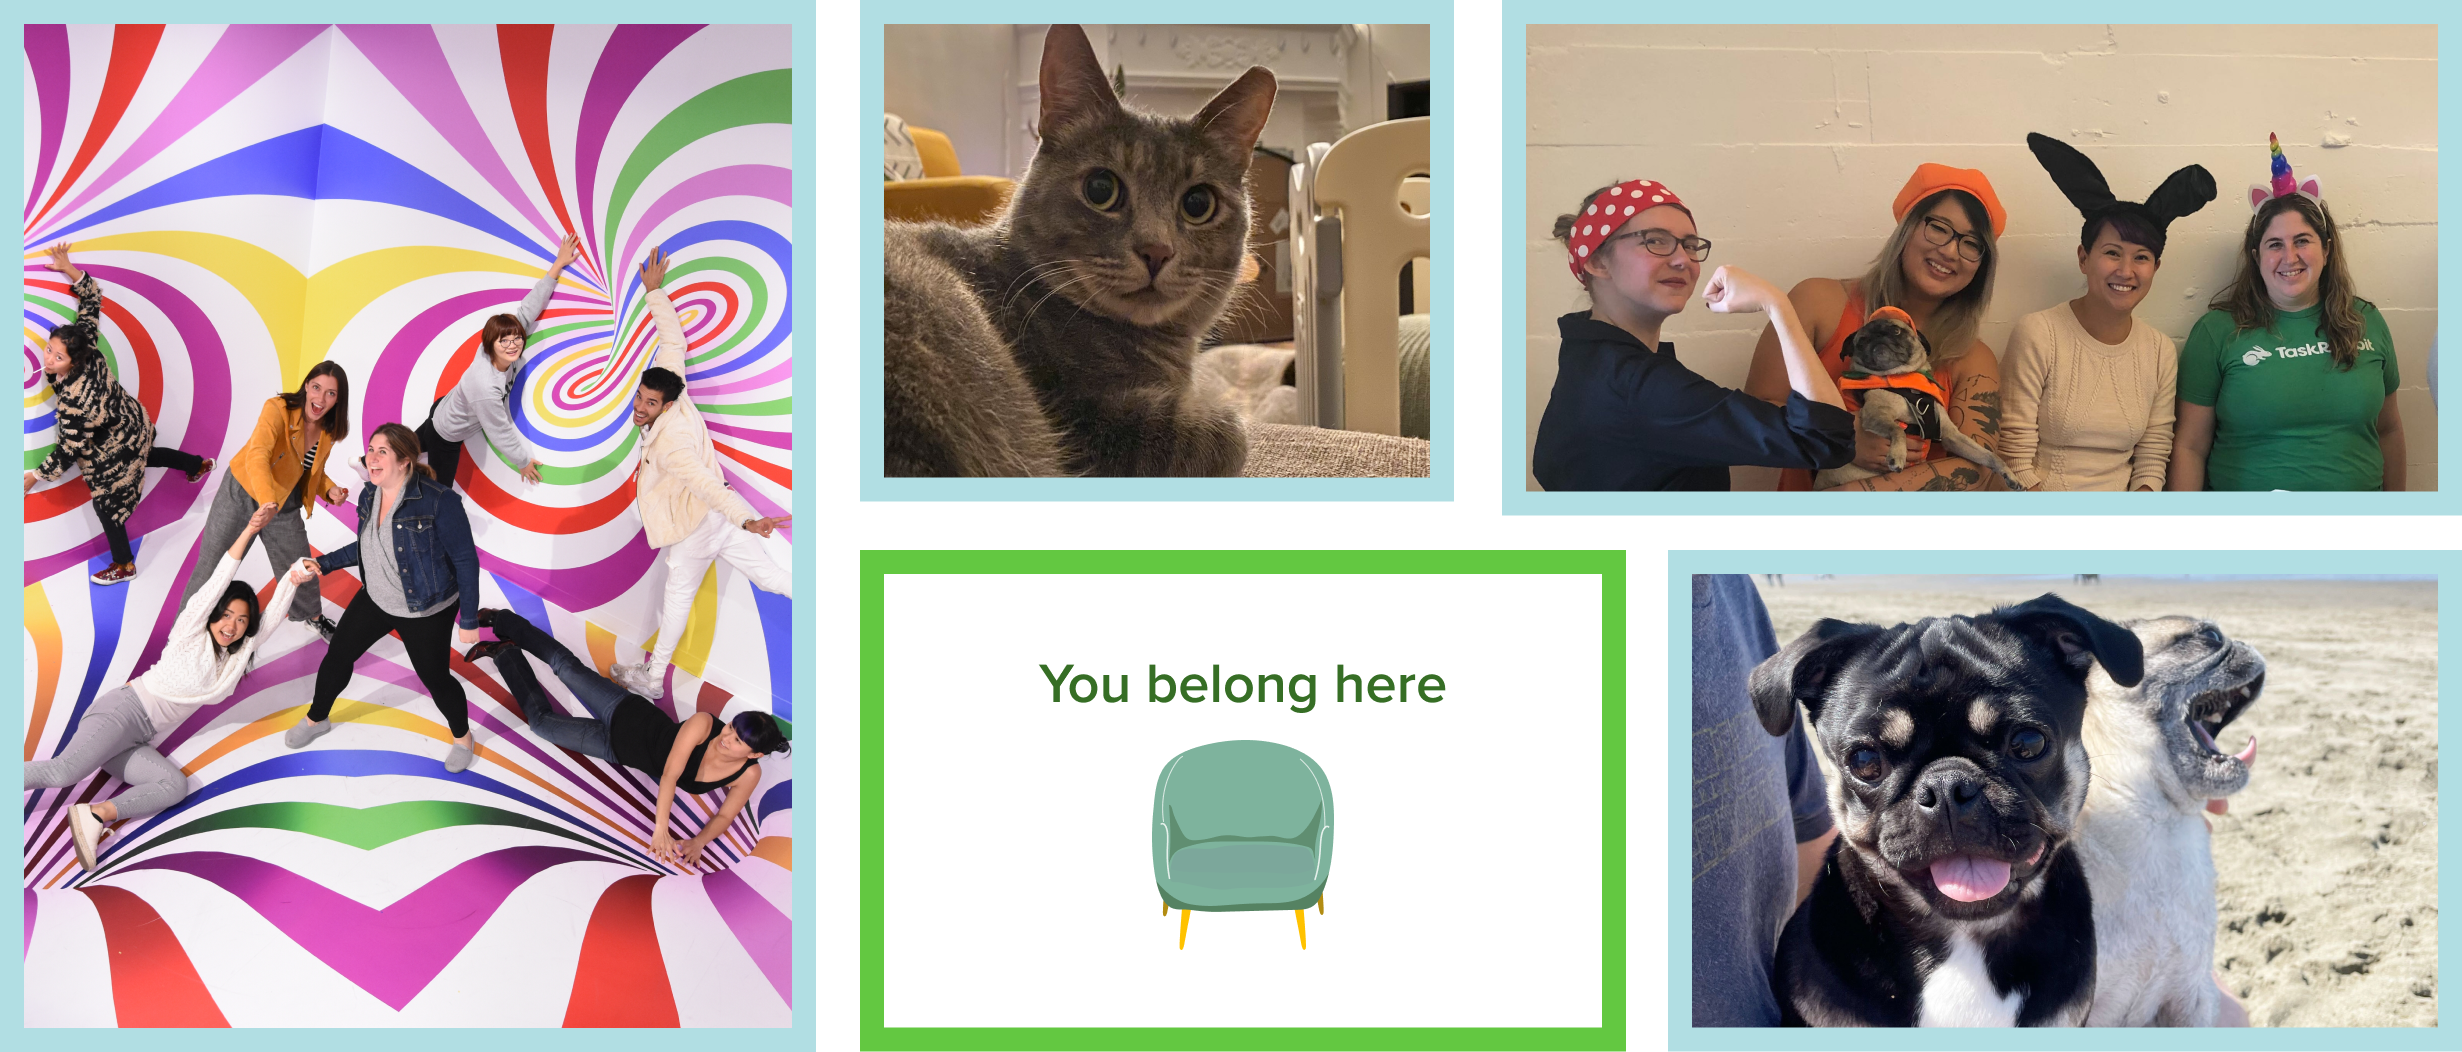 A collage of team photos: a photo of the team at a museum, a cat, two pugs, four team members in Halloween costumes, and a graphic with a chair that says you belong here